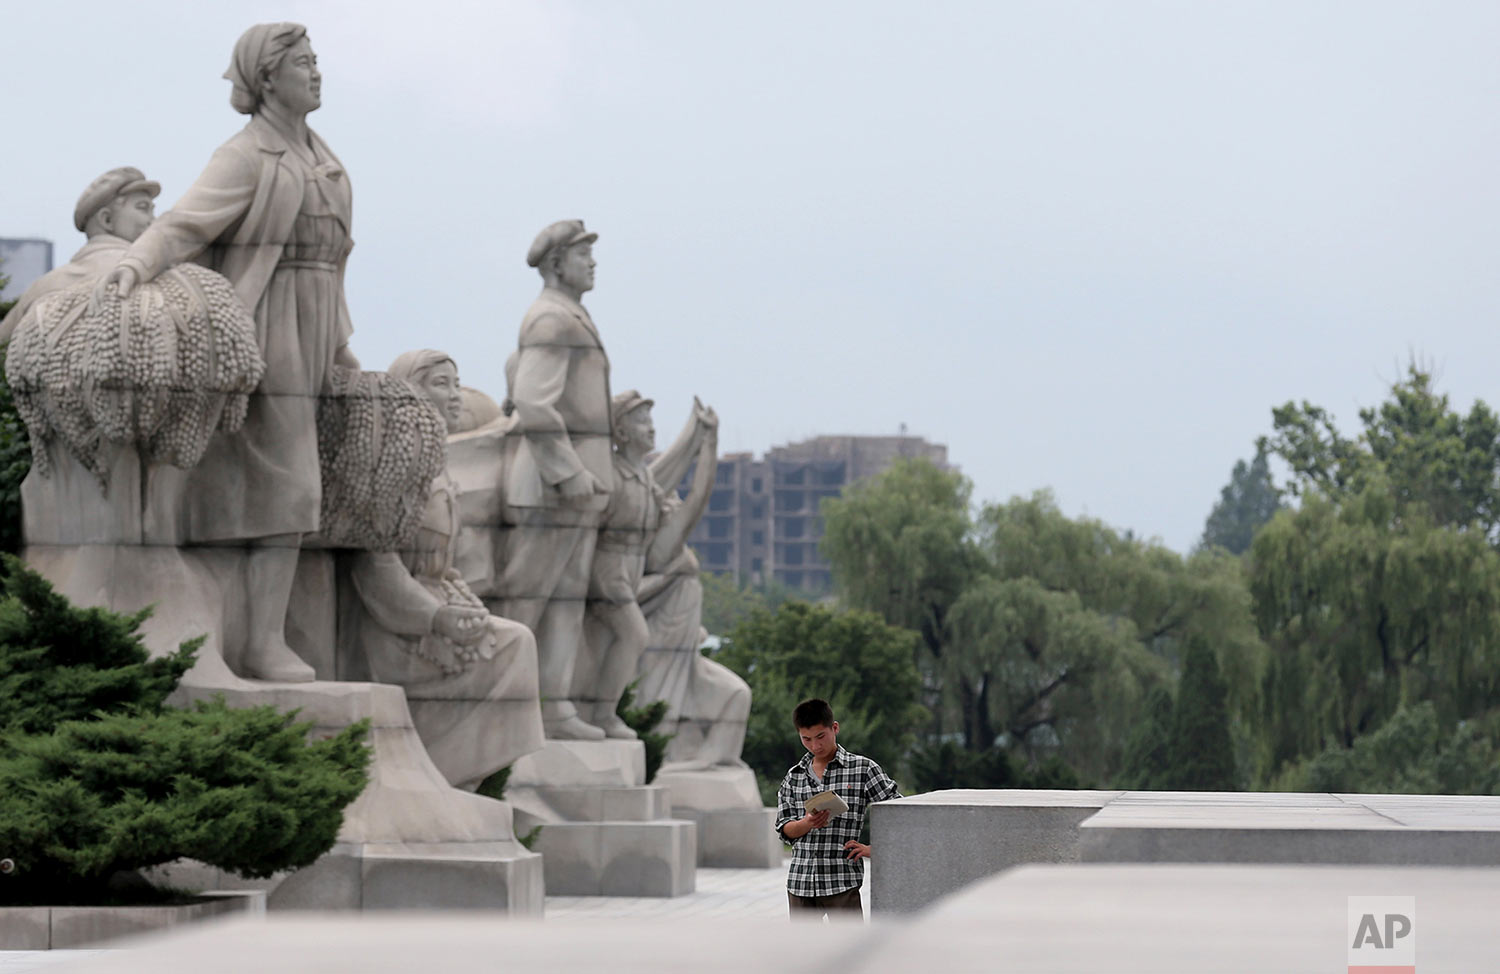 A young North Korean man stands reading next to statues at the Ju Che Tower in Pyongyang on July 21, 2013. (AP Photo/Wong Maye-E)